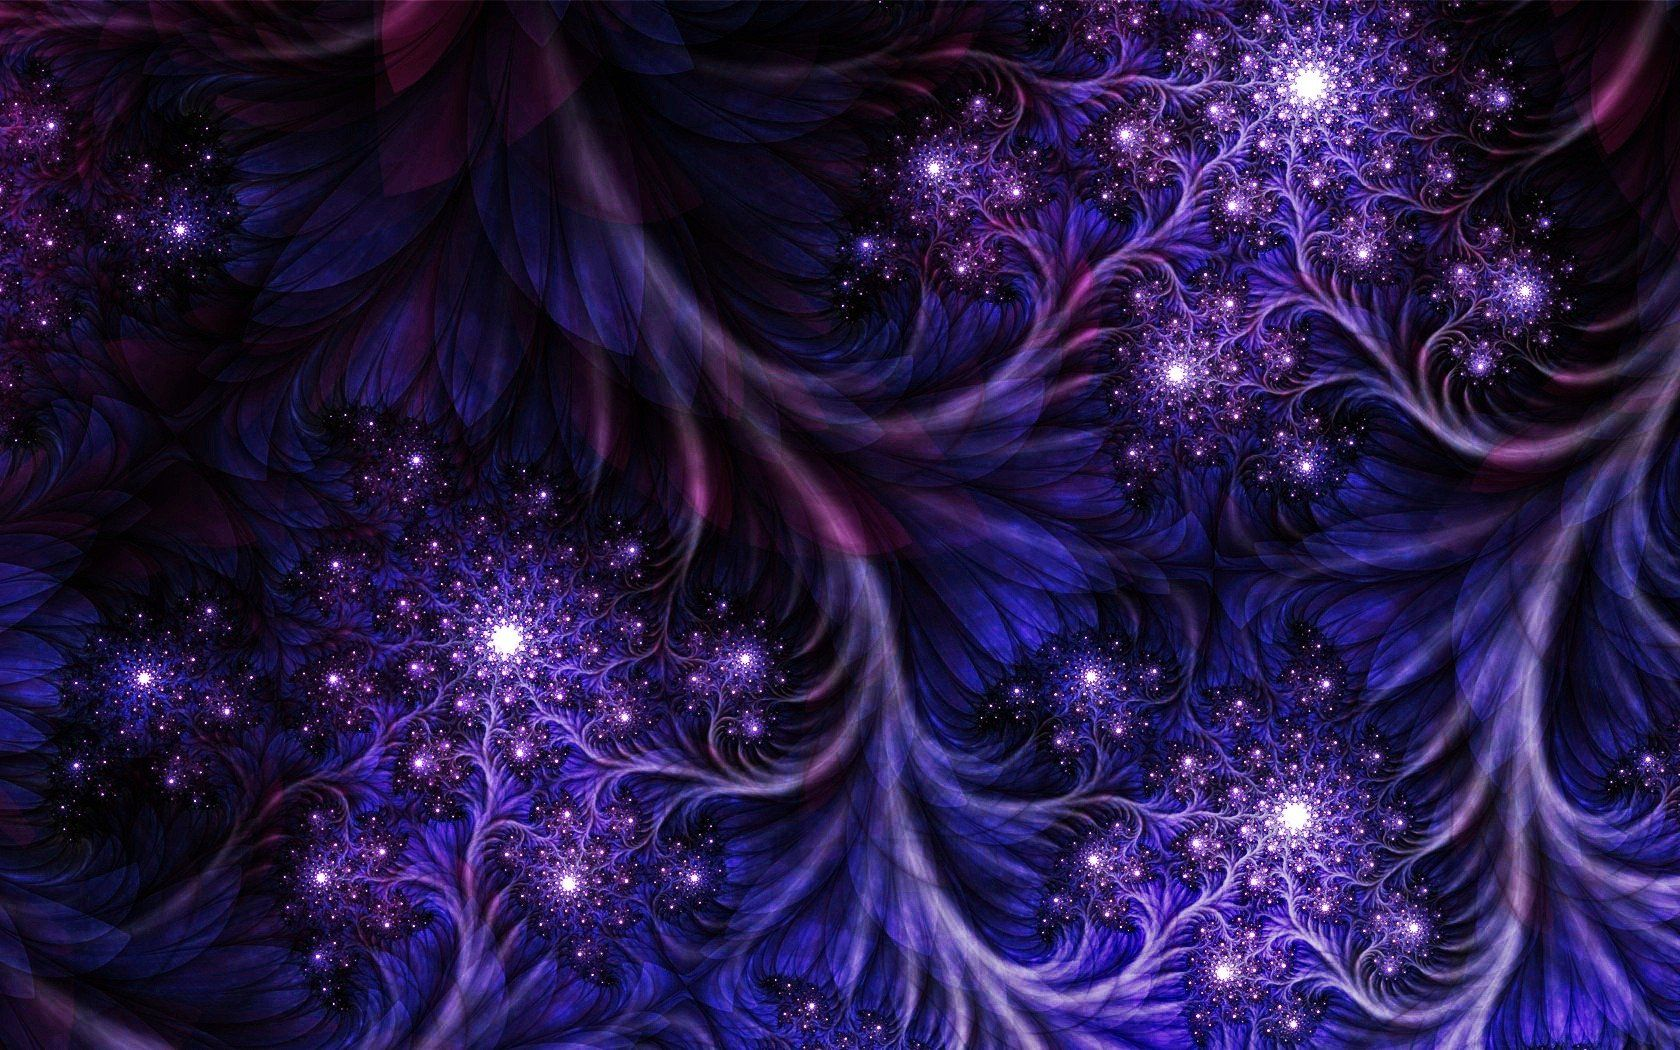 Abstract Fractal Wallpaper Abstract Dark Purple Fractal